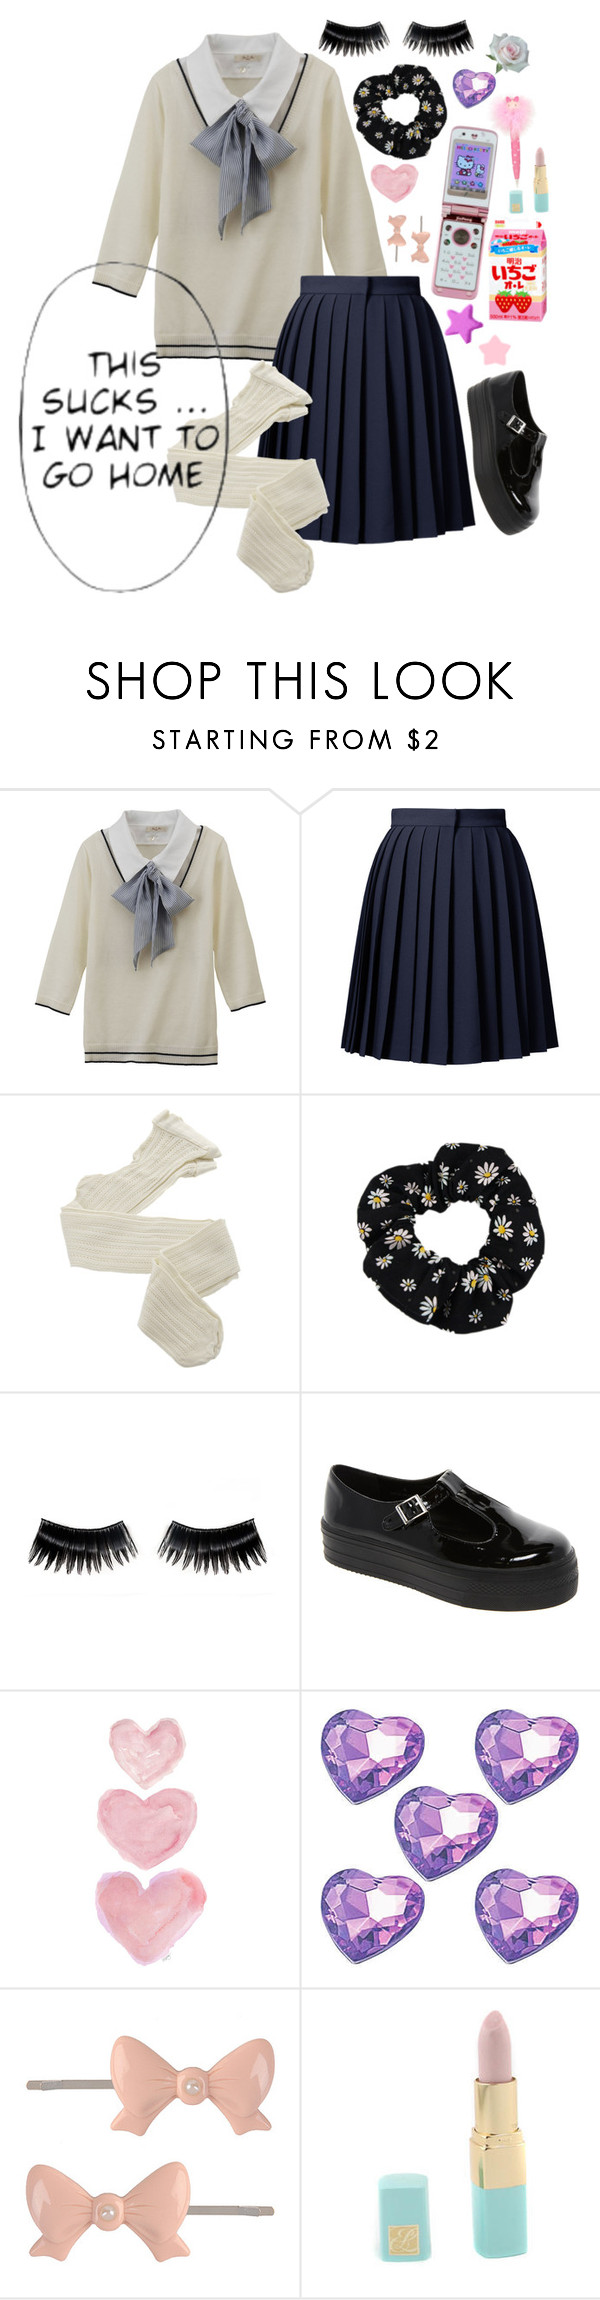 """School girl~"" by mochineko ❤ liked on Polyvore featuring Orla Kiely, Fogal, NYX, ASOS, Shabby Chic, Hello Kitty, Forever 21, Estée Lauder and sOUP"